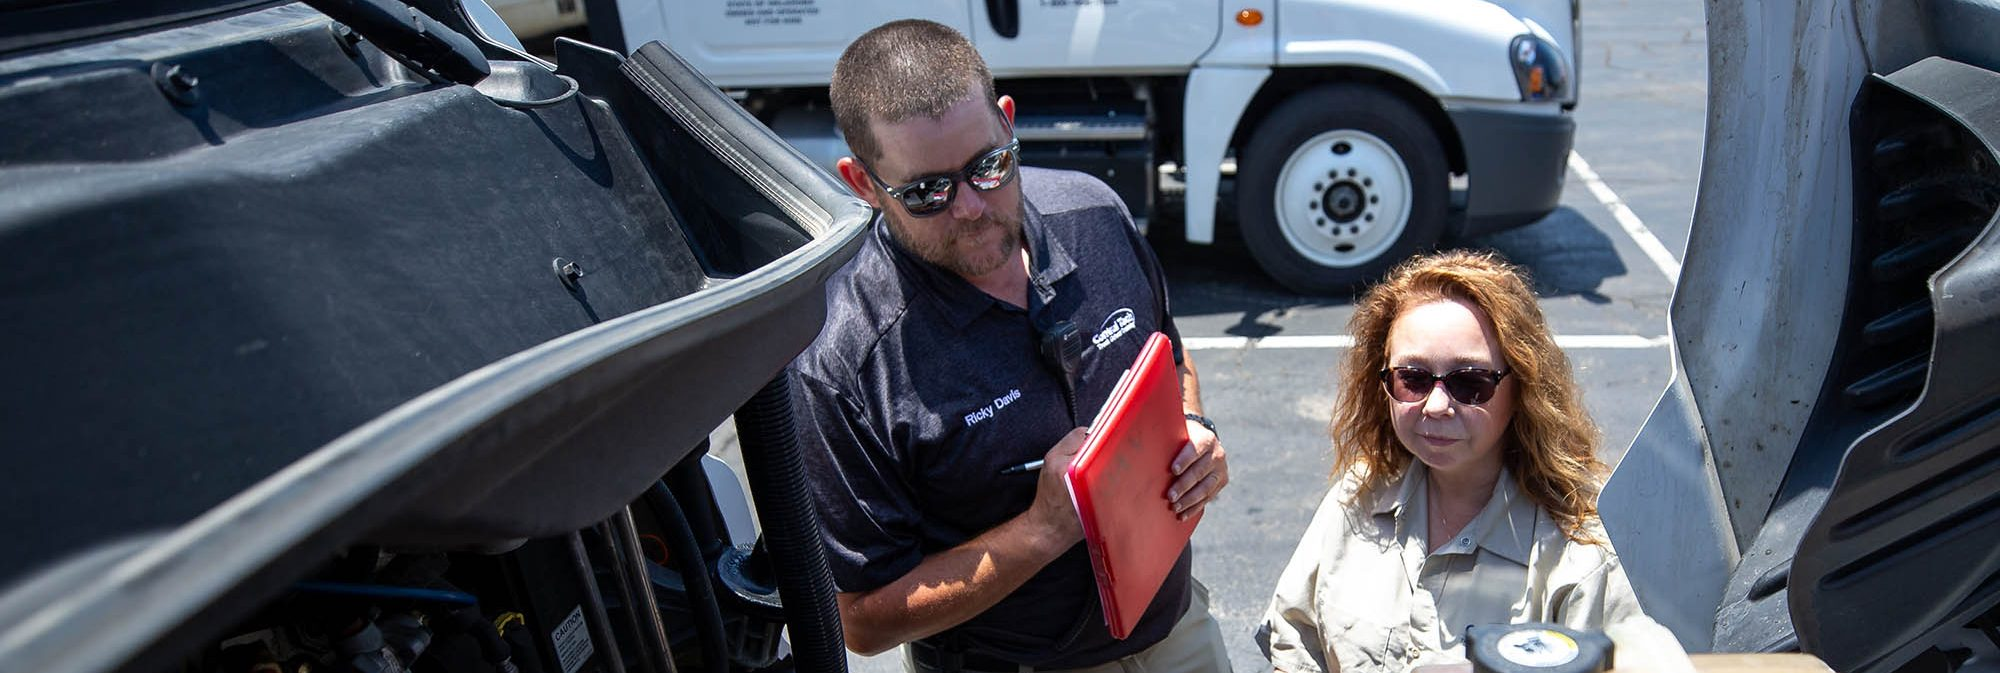 Central Tech instructor checking a semi truck with a student